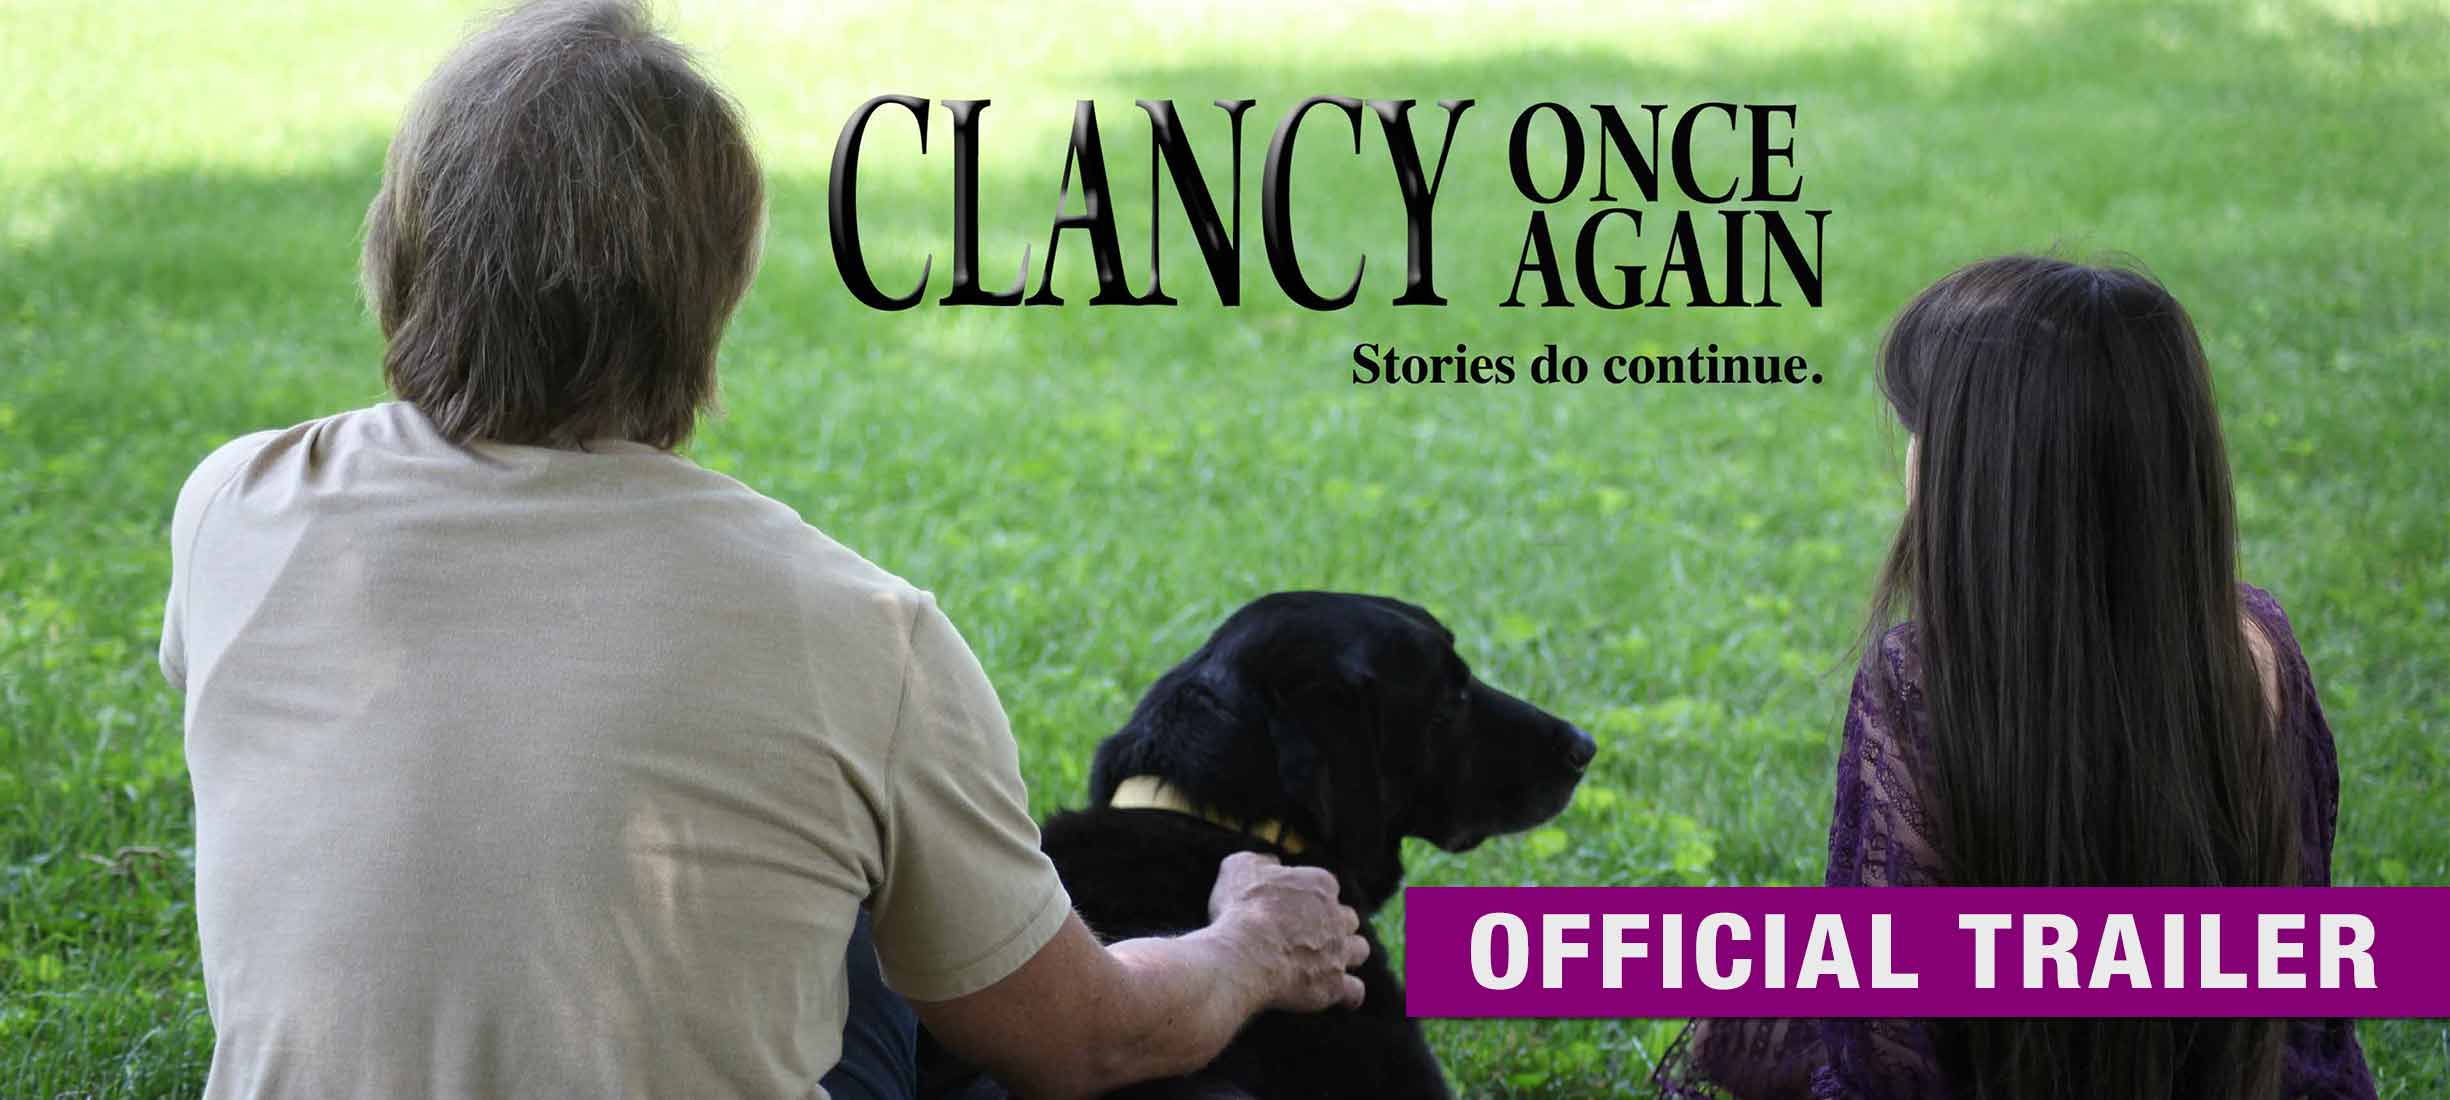 Clancy Once Again:  Trailer